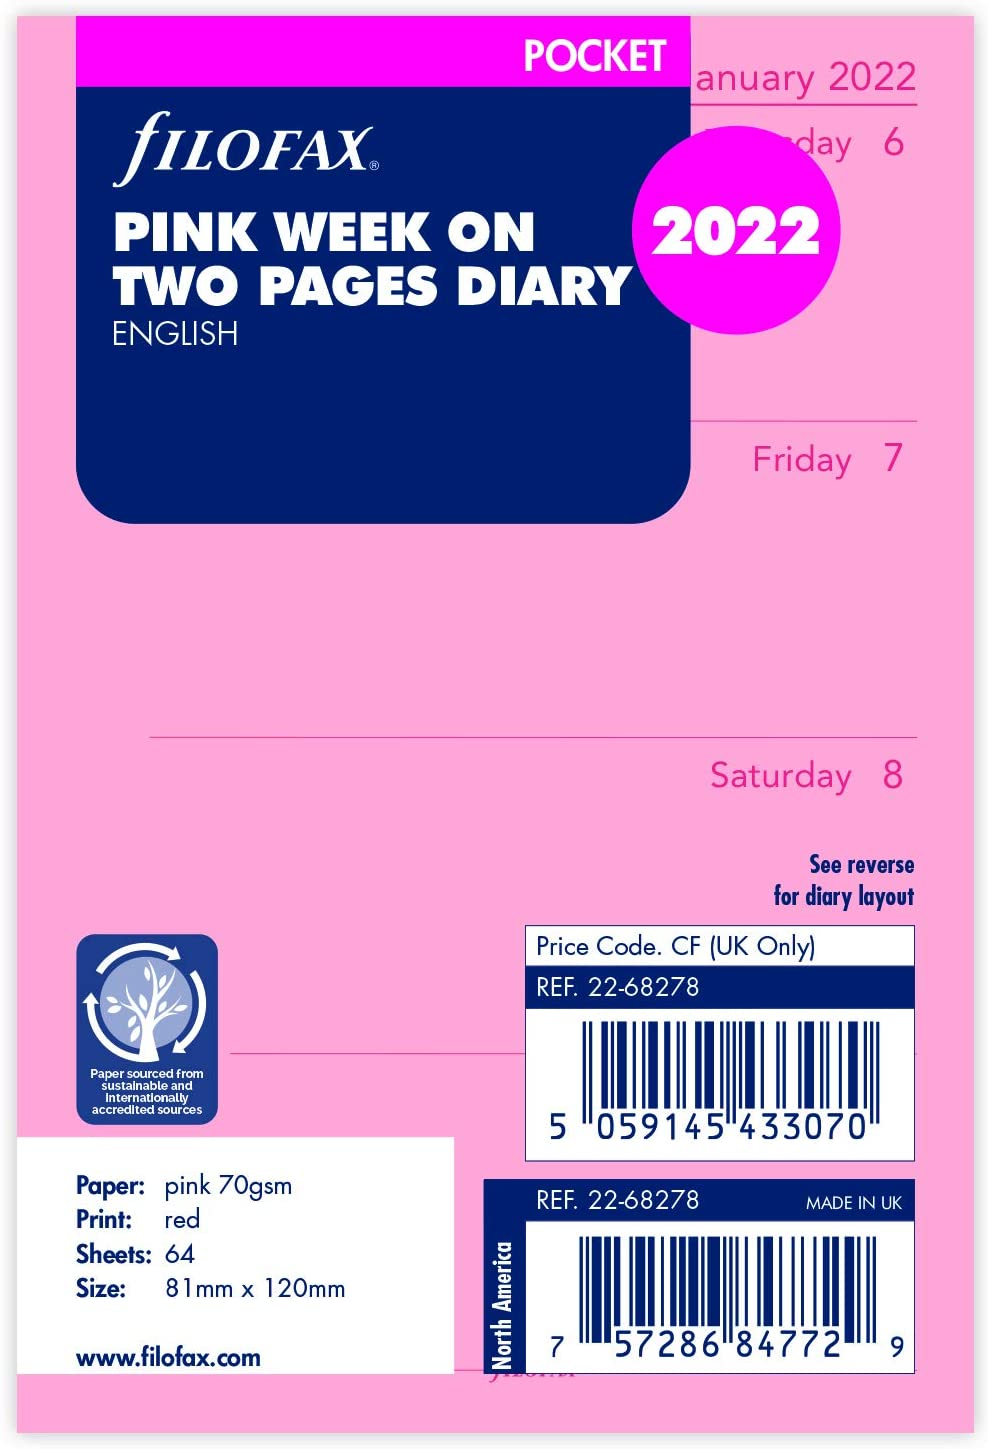 Filofax Pocket Week on Cheap bargain Two Pages Refill - 2022 Popular Diary Pink